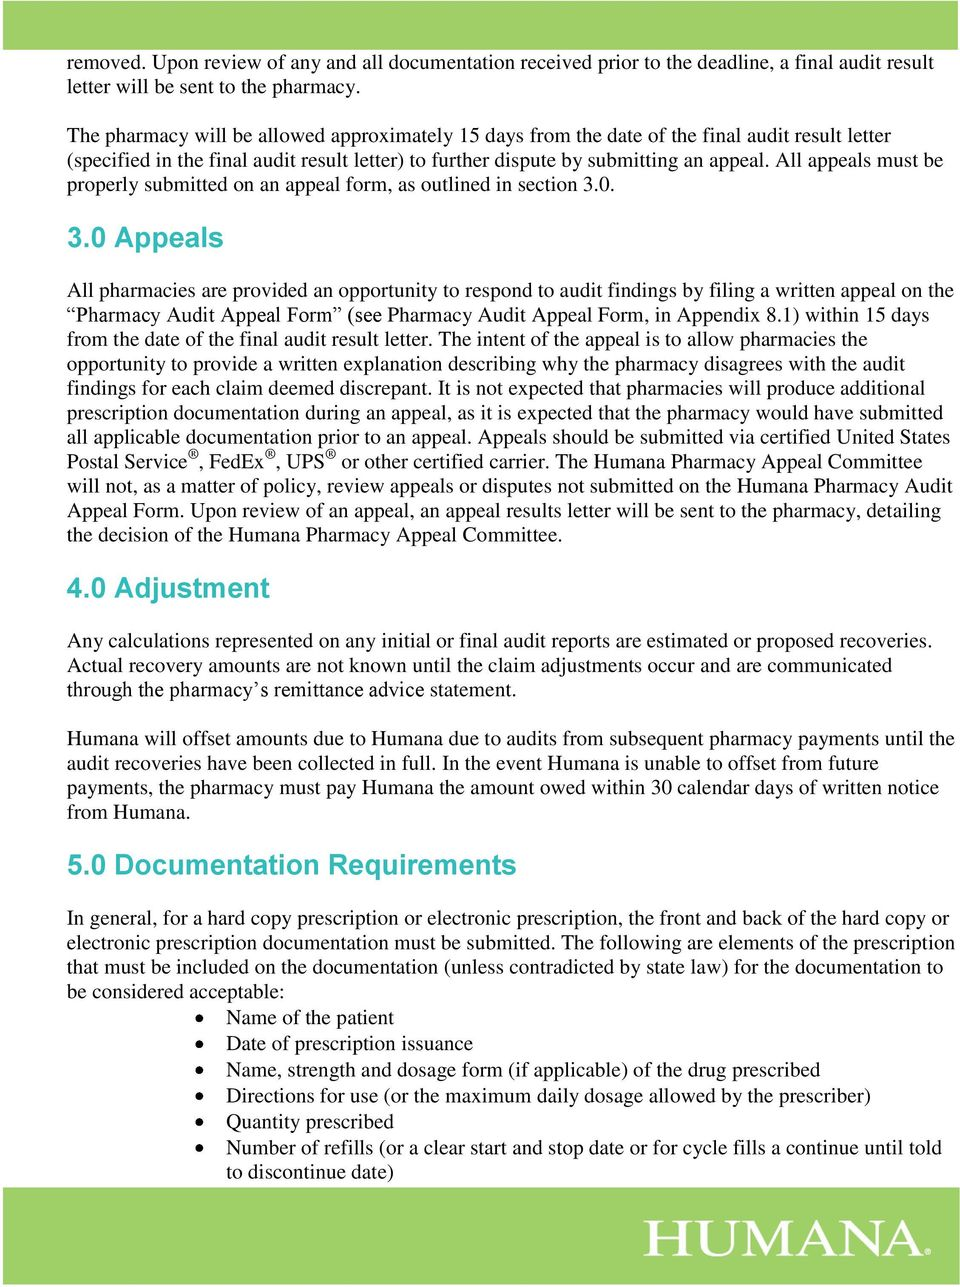 Humana Pharmacy Solutions Audit Guide - PDF